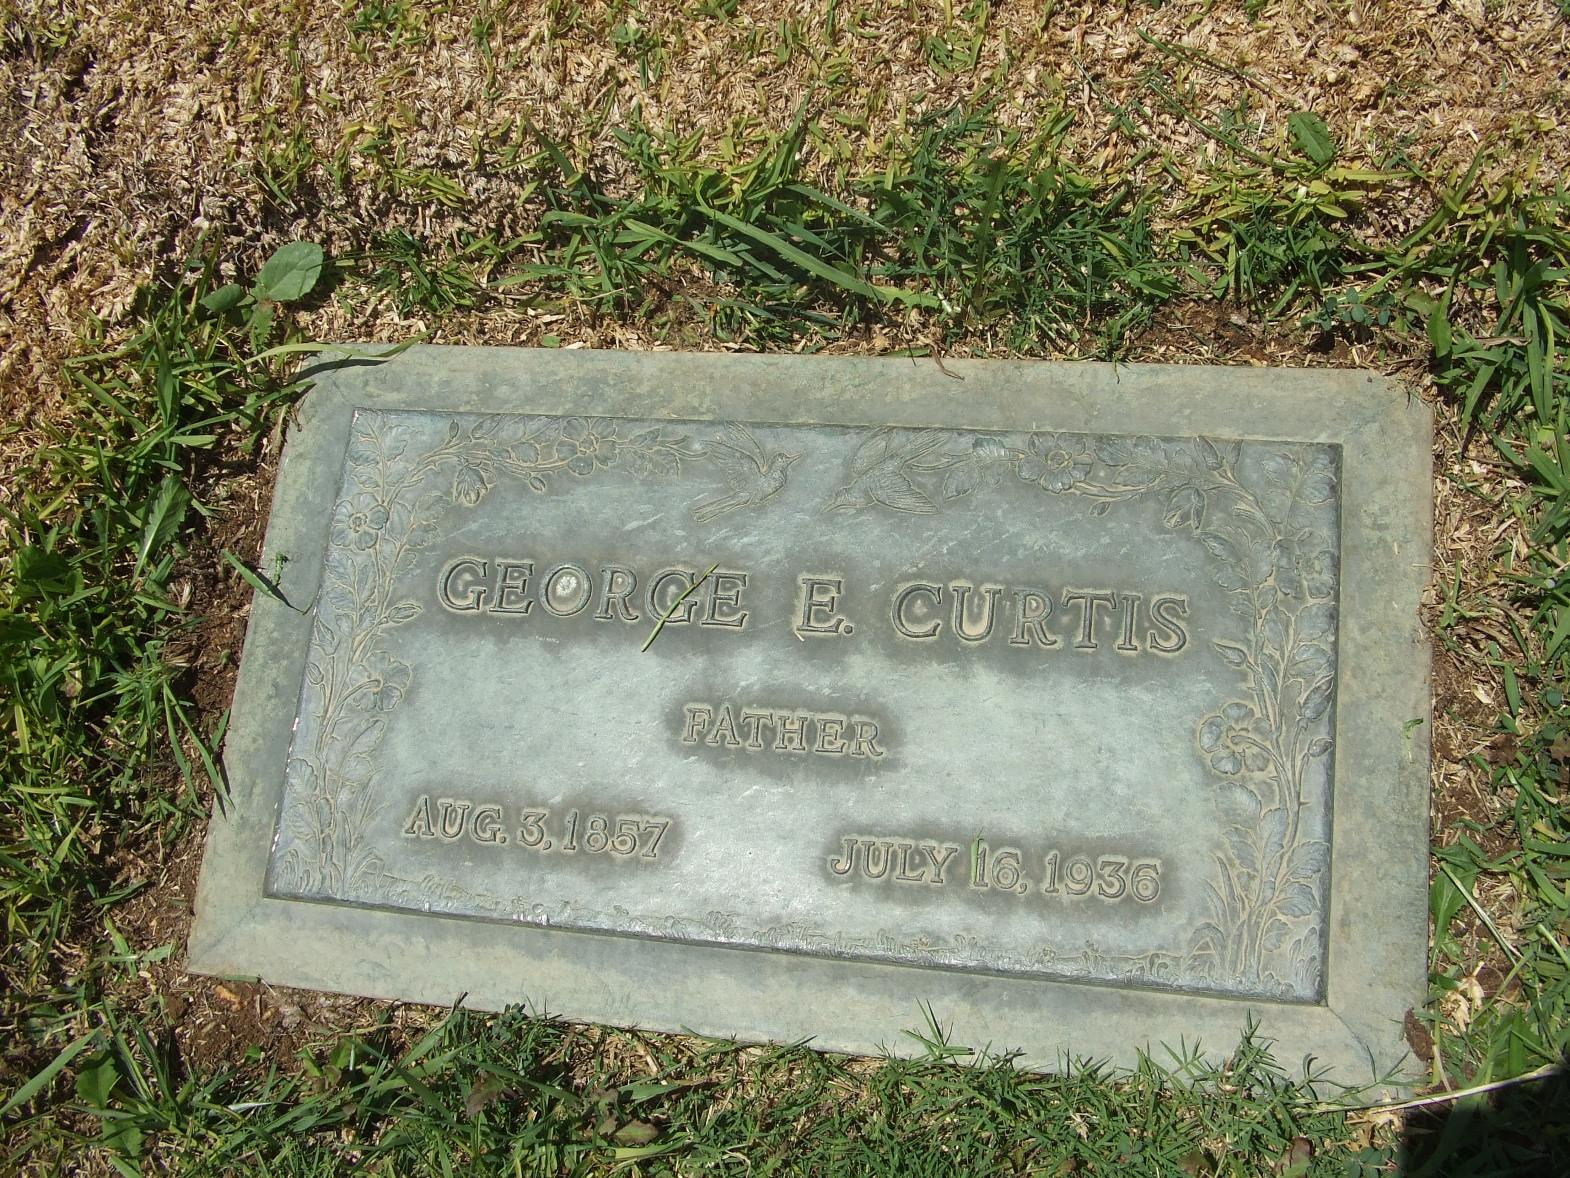 George Edgar Curtis